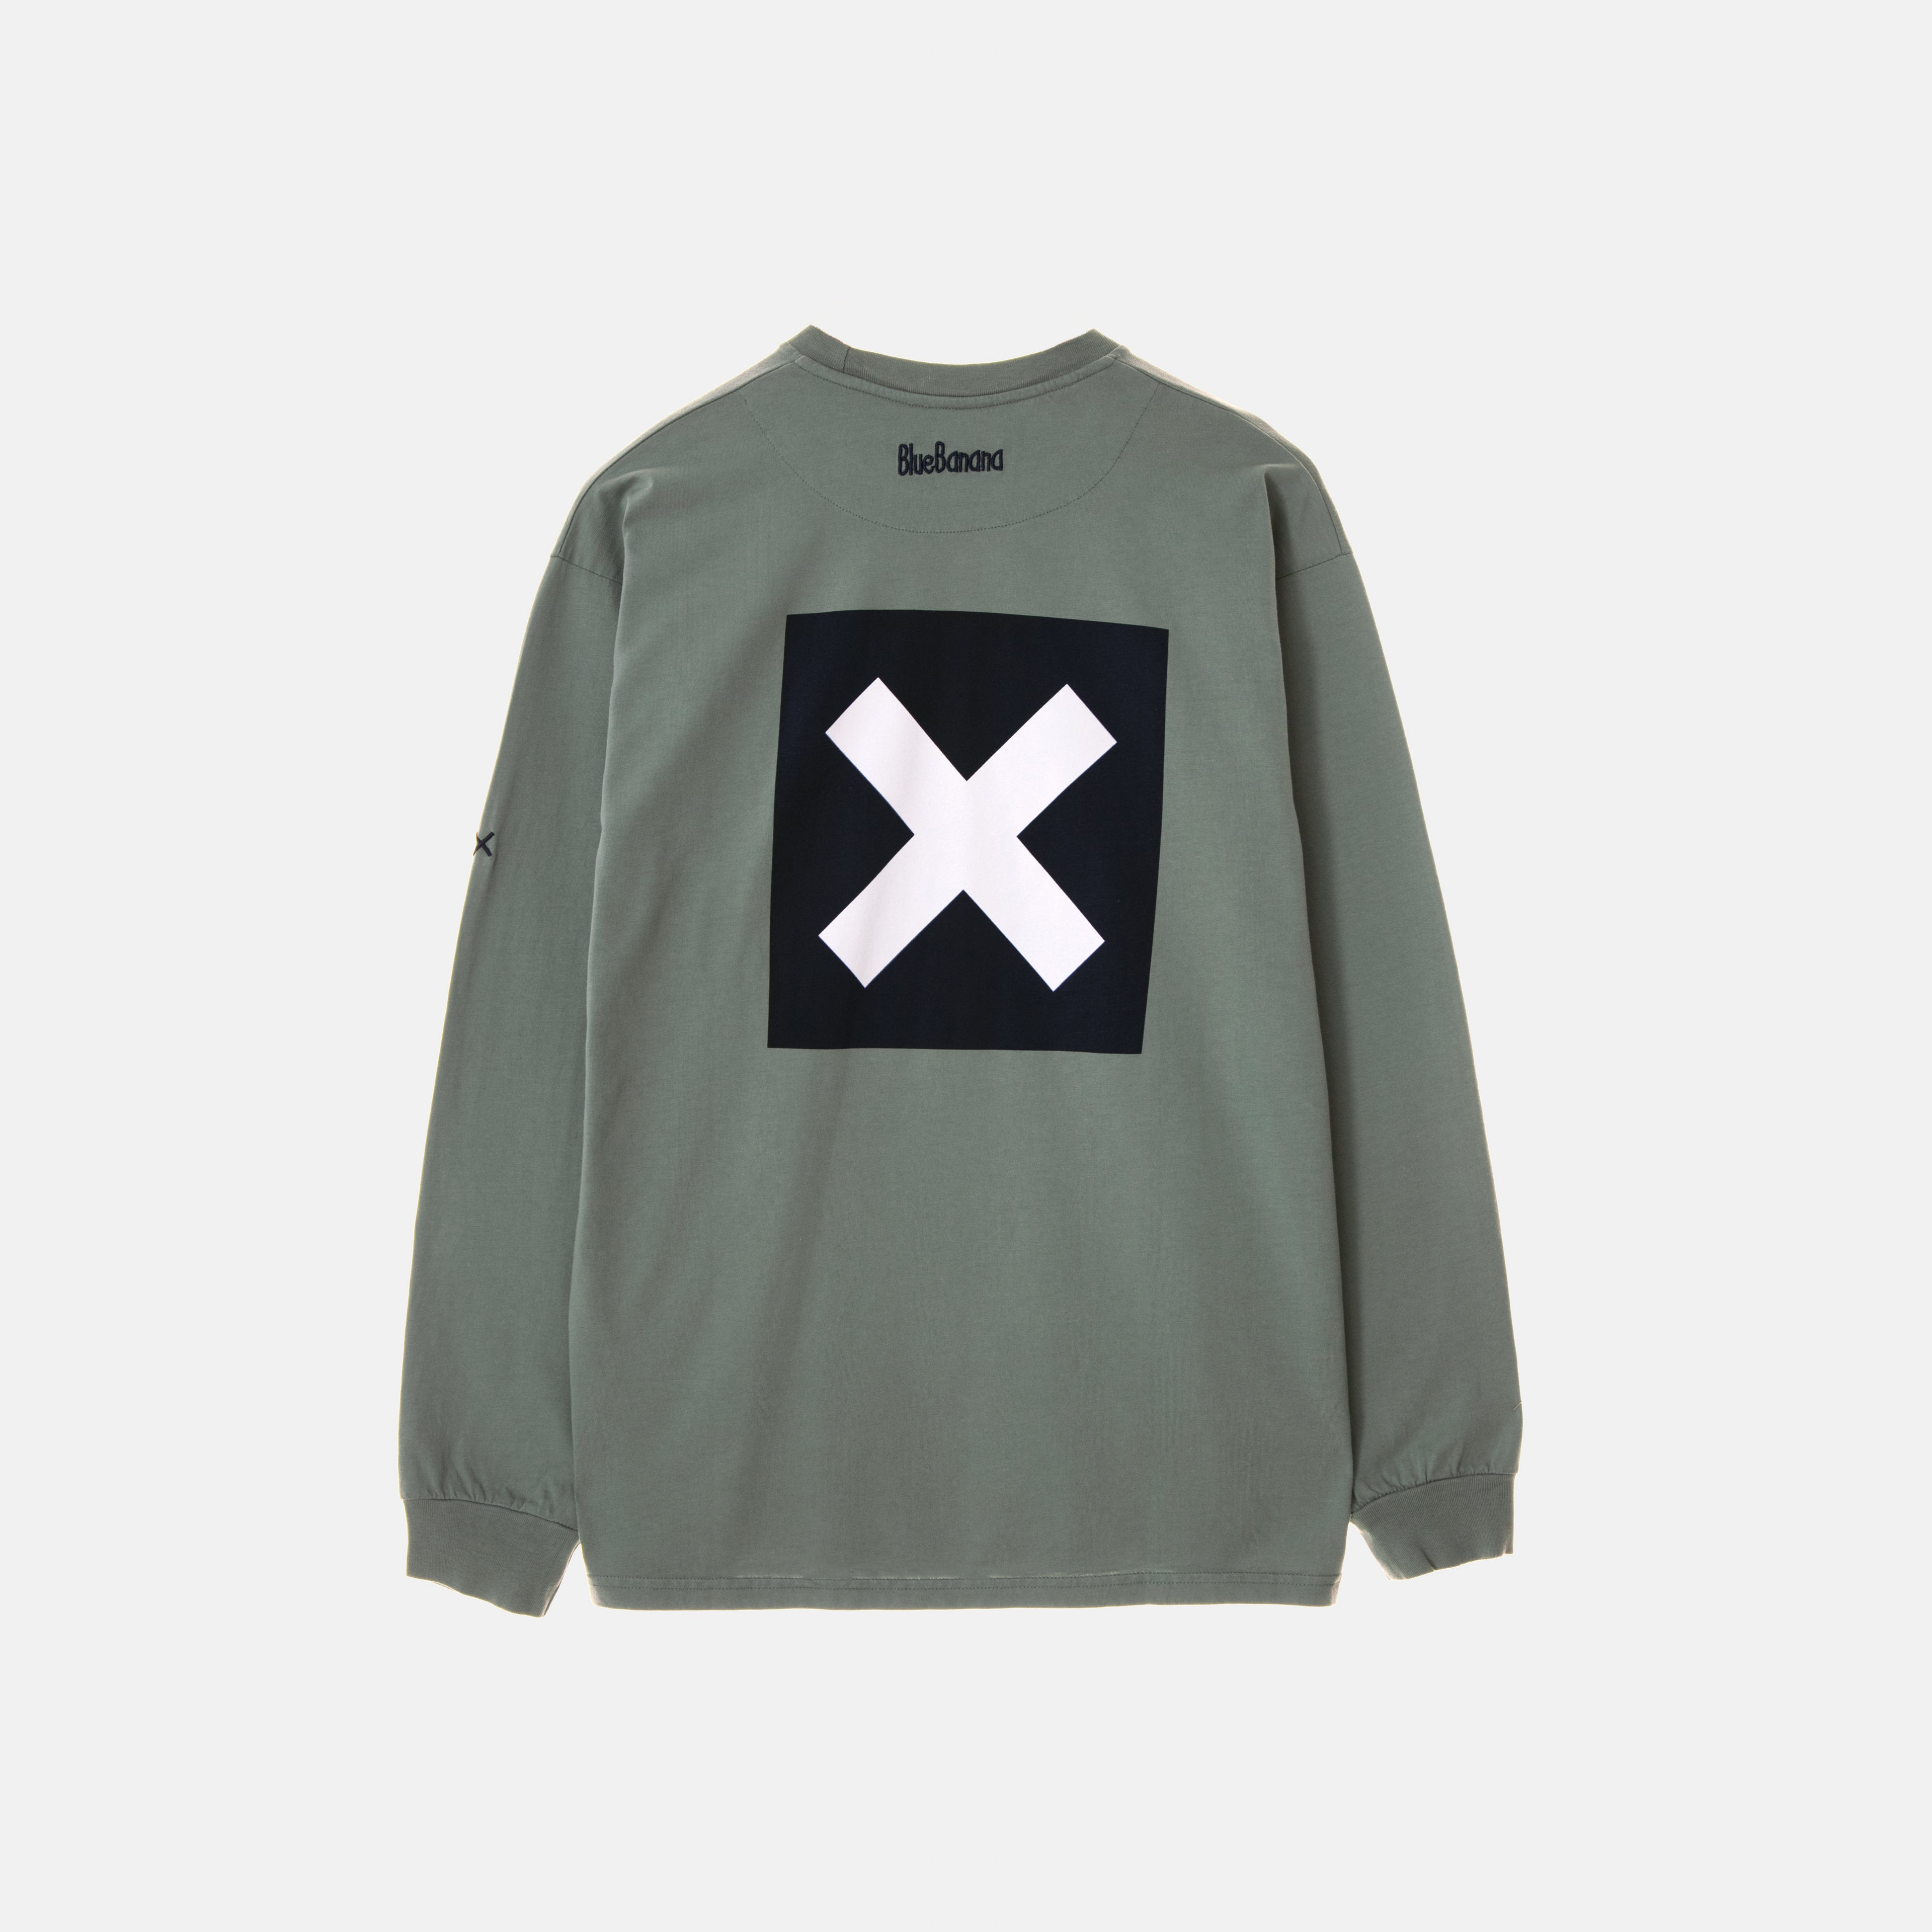 GREEN SQUARE TEE